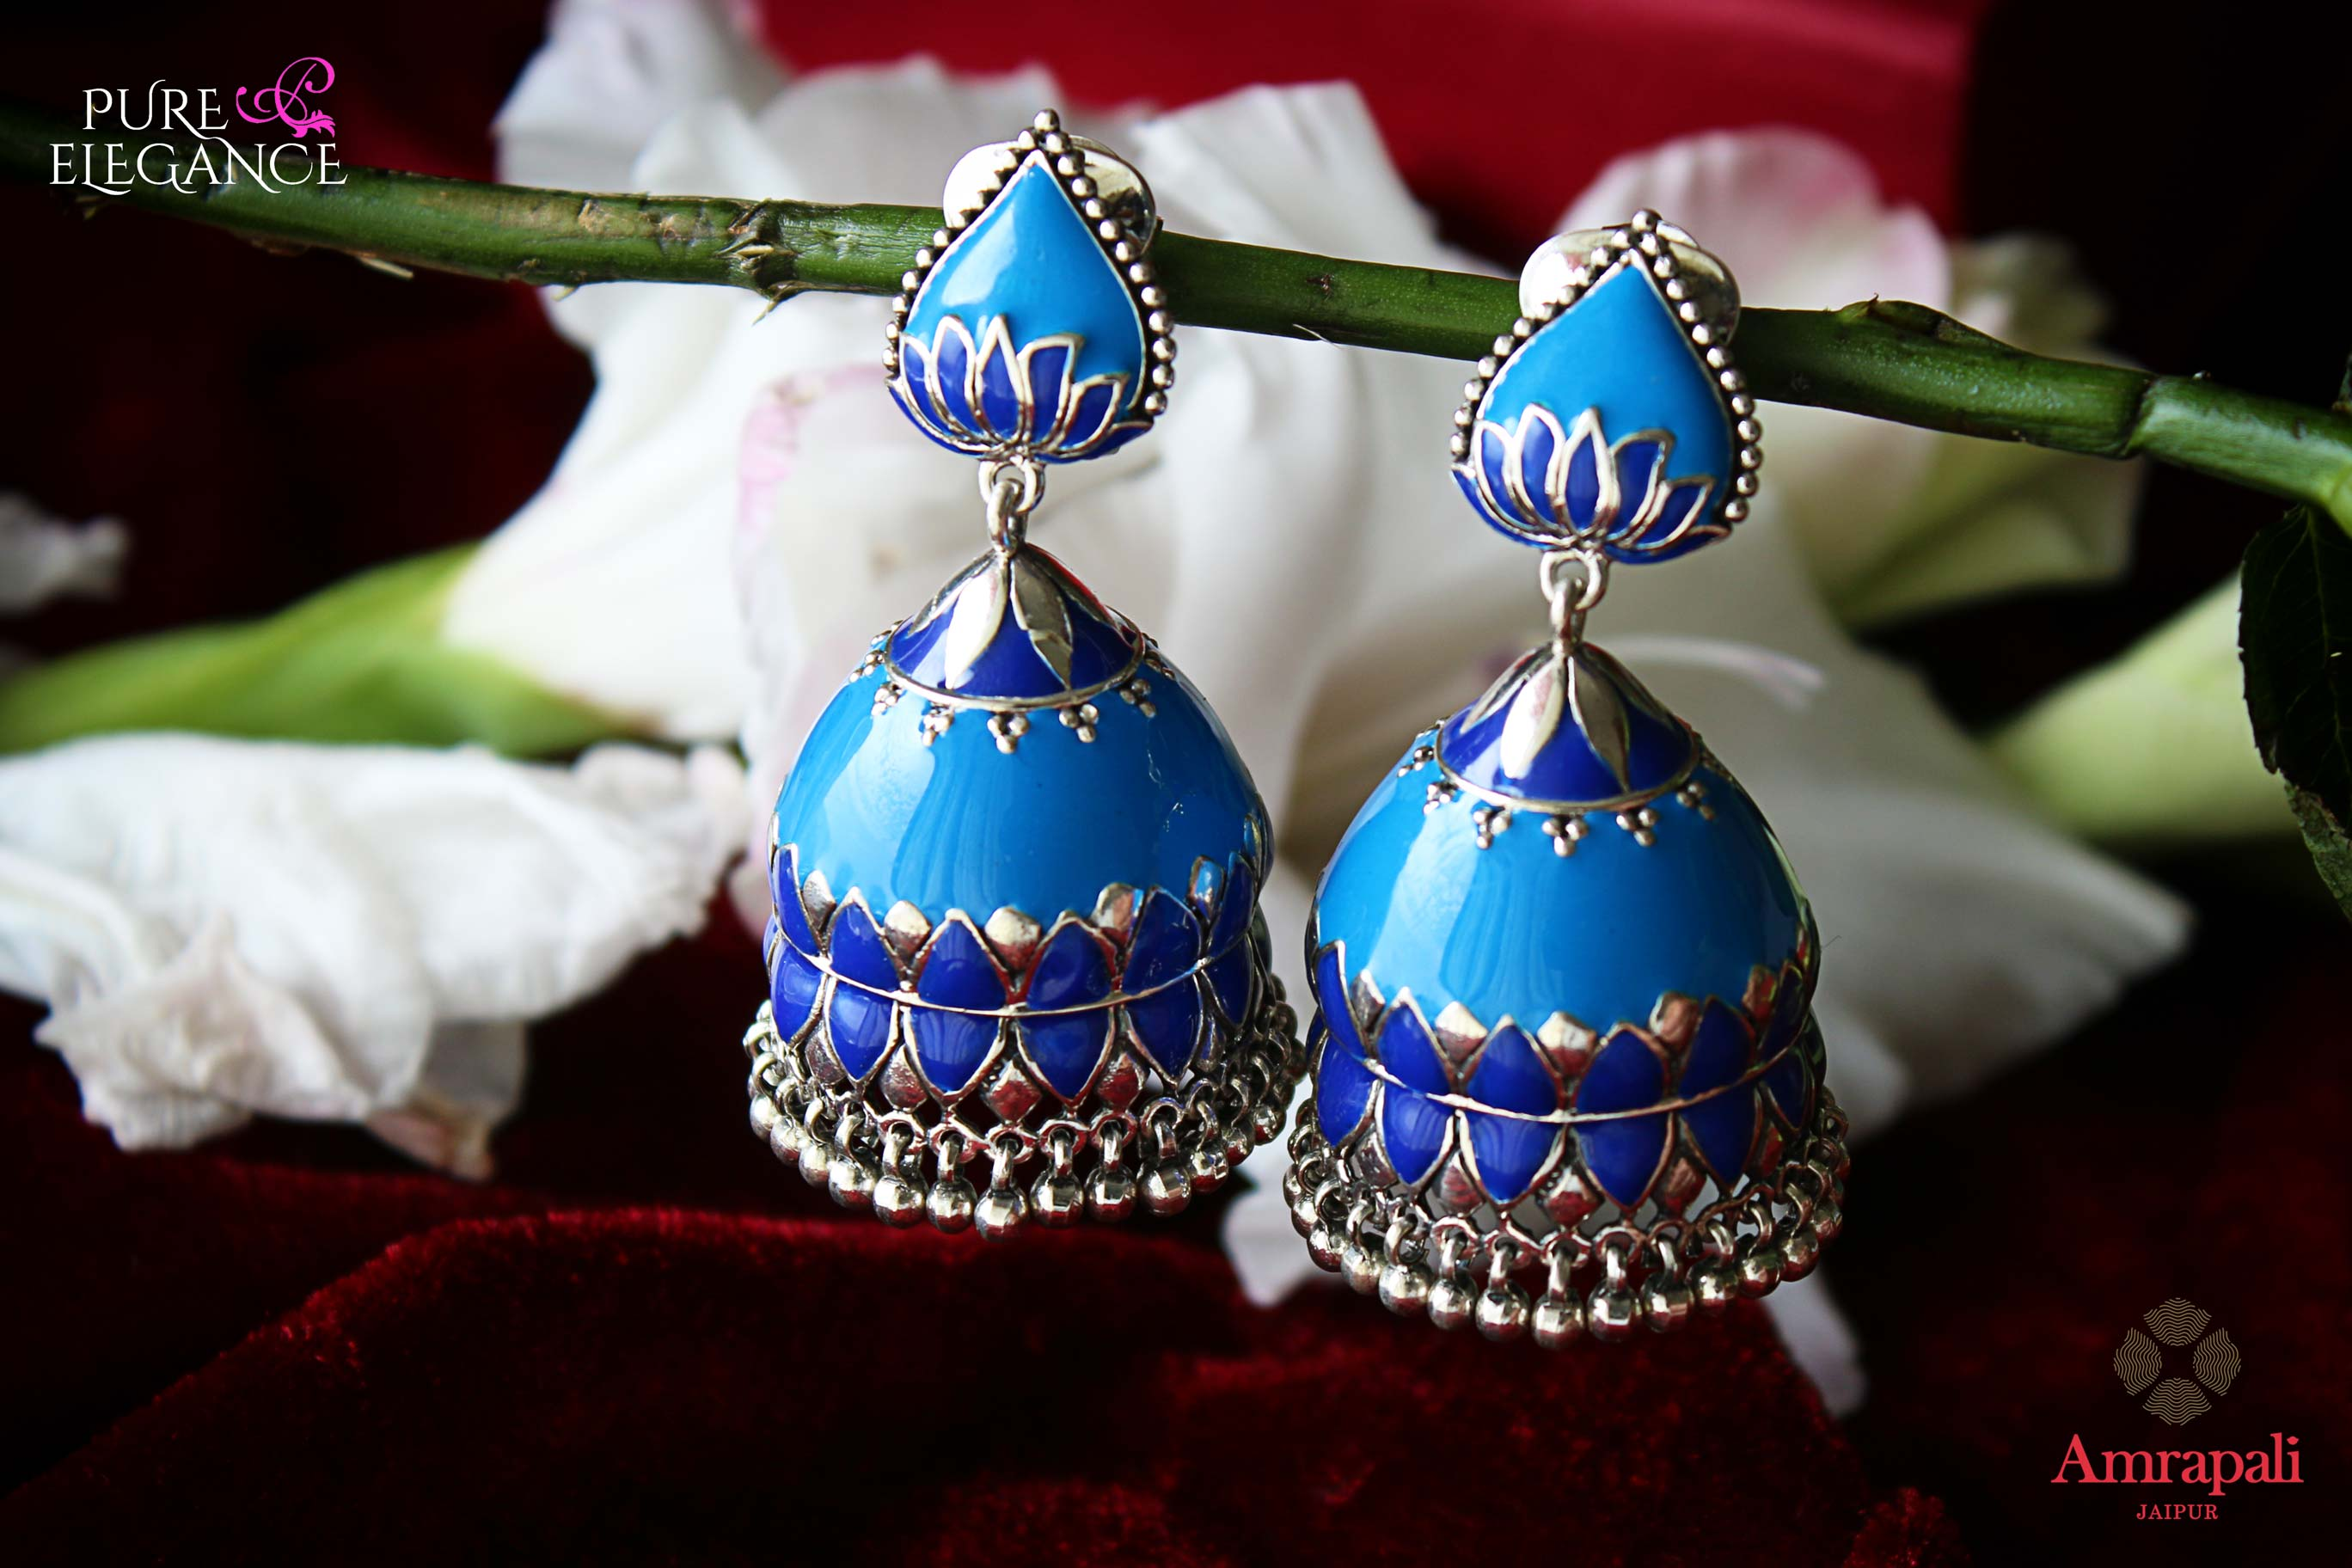 Shop Amrapali silver blue enamel jhumka earrings online in USA. Find an exquisite collection of handcrafted Indian jewelry in USA at Pure Elegance Indian fashion store. Complete your festive look with beautiful silver gold plated necklaces, silver gold plated earrings, silver jewelry from our online store.-flatlay